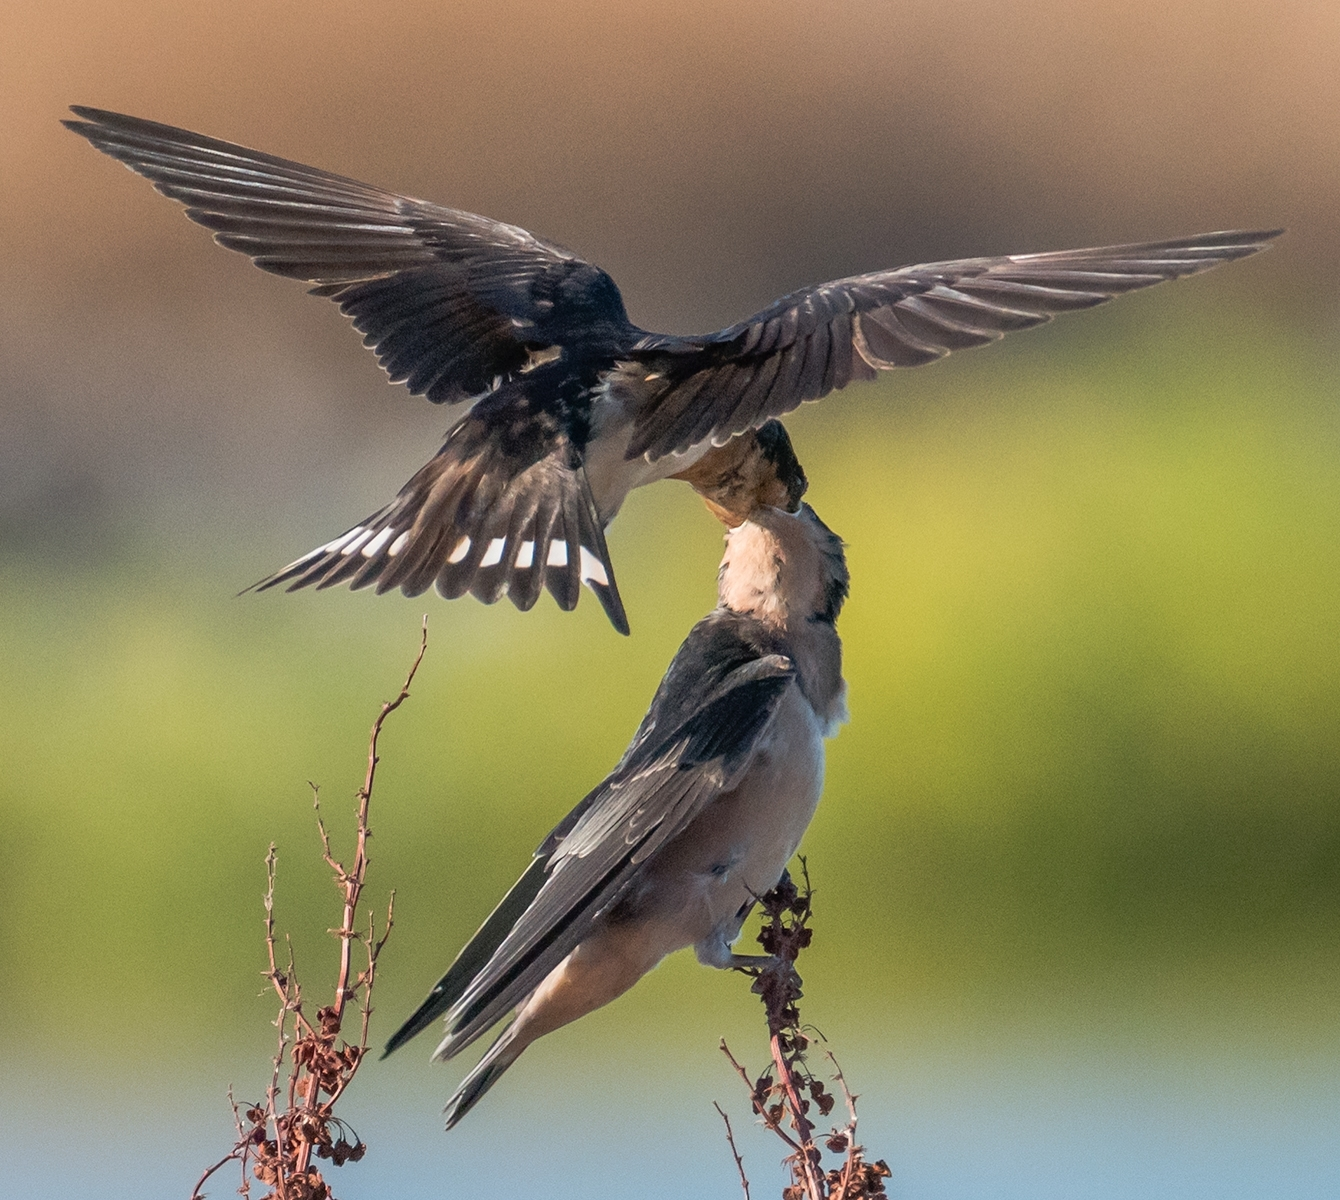 Barn-swallow-Hirundo-rustica-chick-being-fed-an-insect-3-12324515-Parent-delivers-insect-deep-into-chicks-throat-NM-Place-by-Susie-Kelly-MR